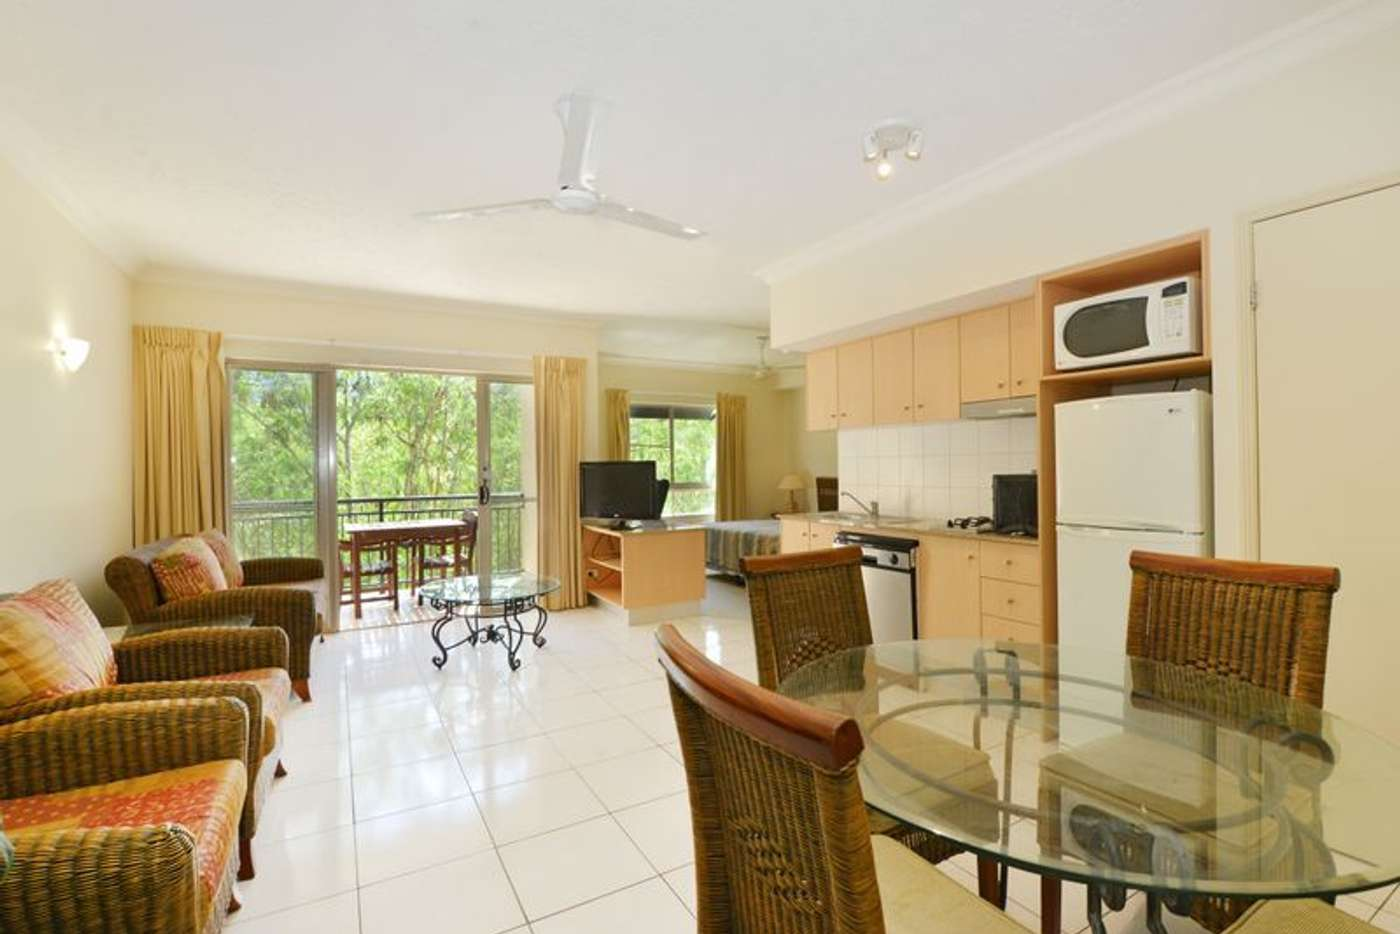 Main view of Homely apartment listing, 1732/2 Greenslopes Street, Cairns North QLD 4870